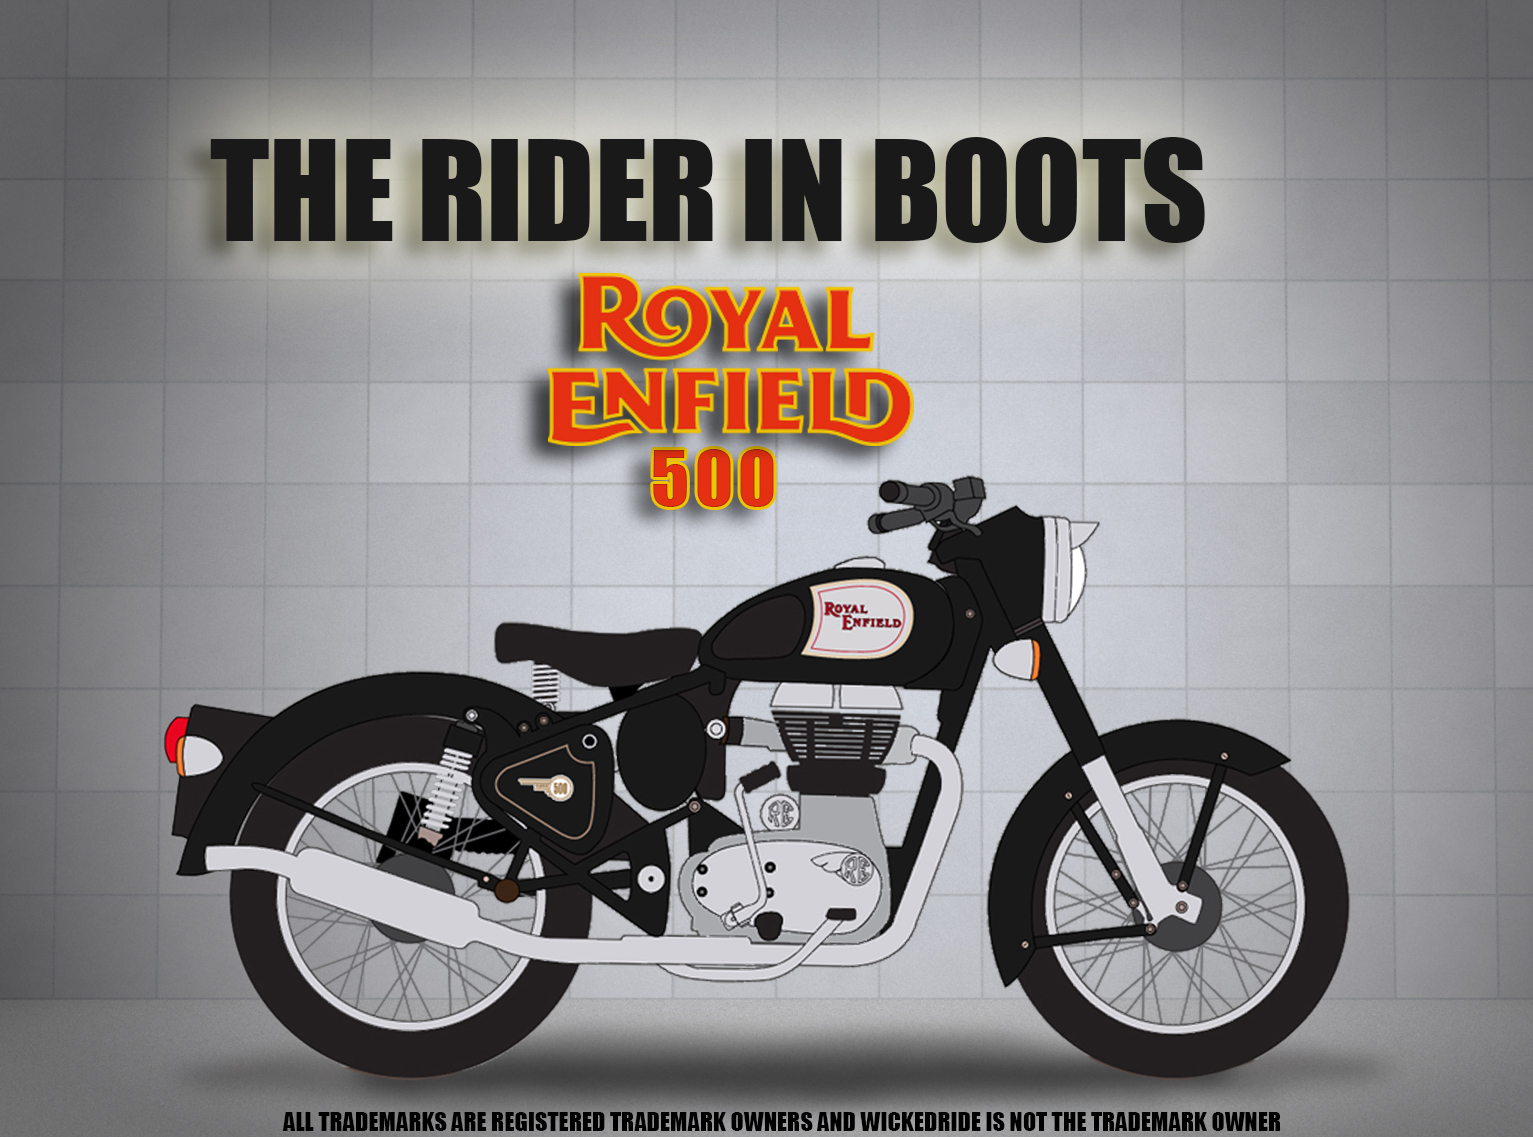 The Rider in Boots